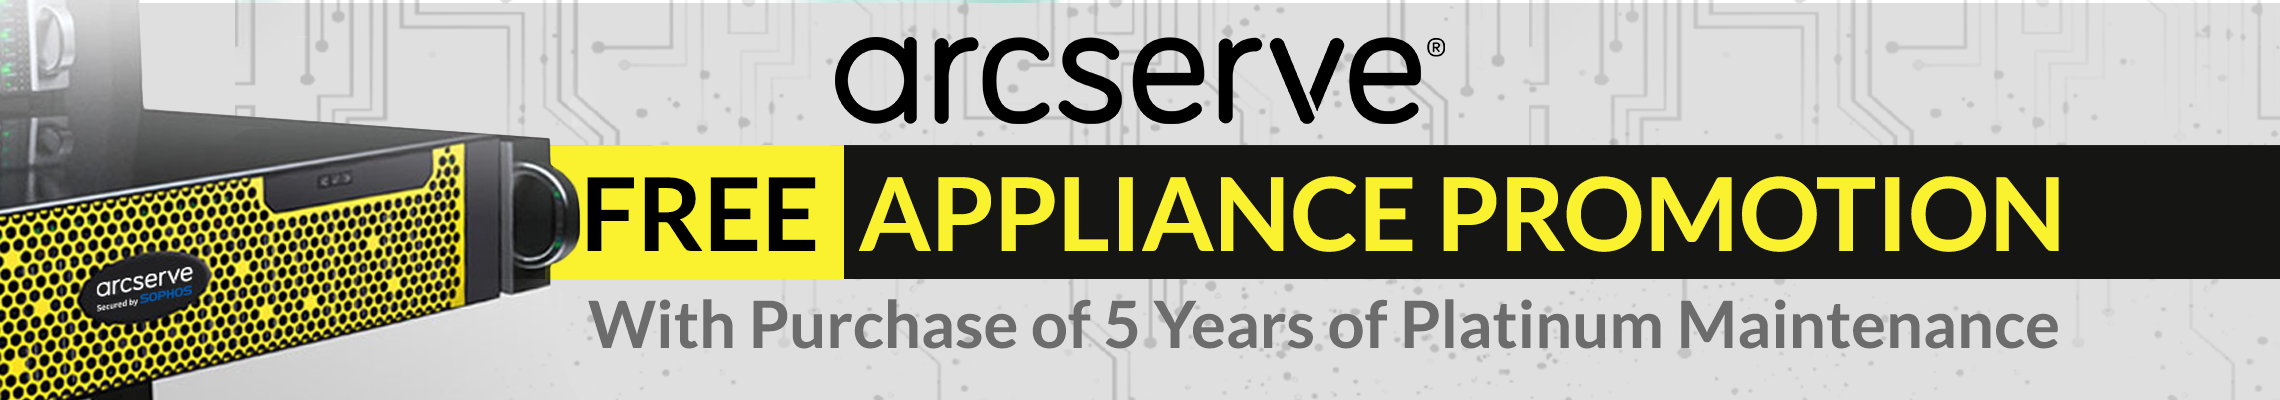 Free Appliance Banner